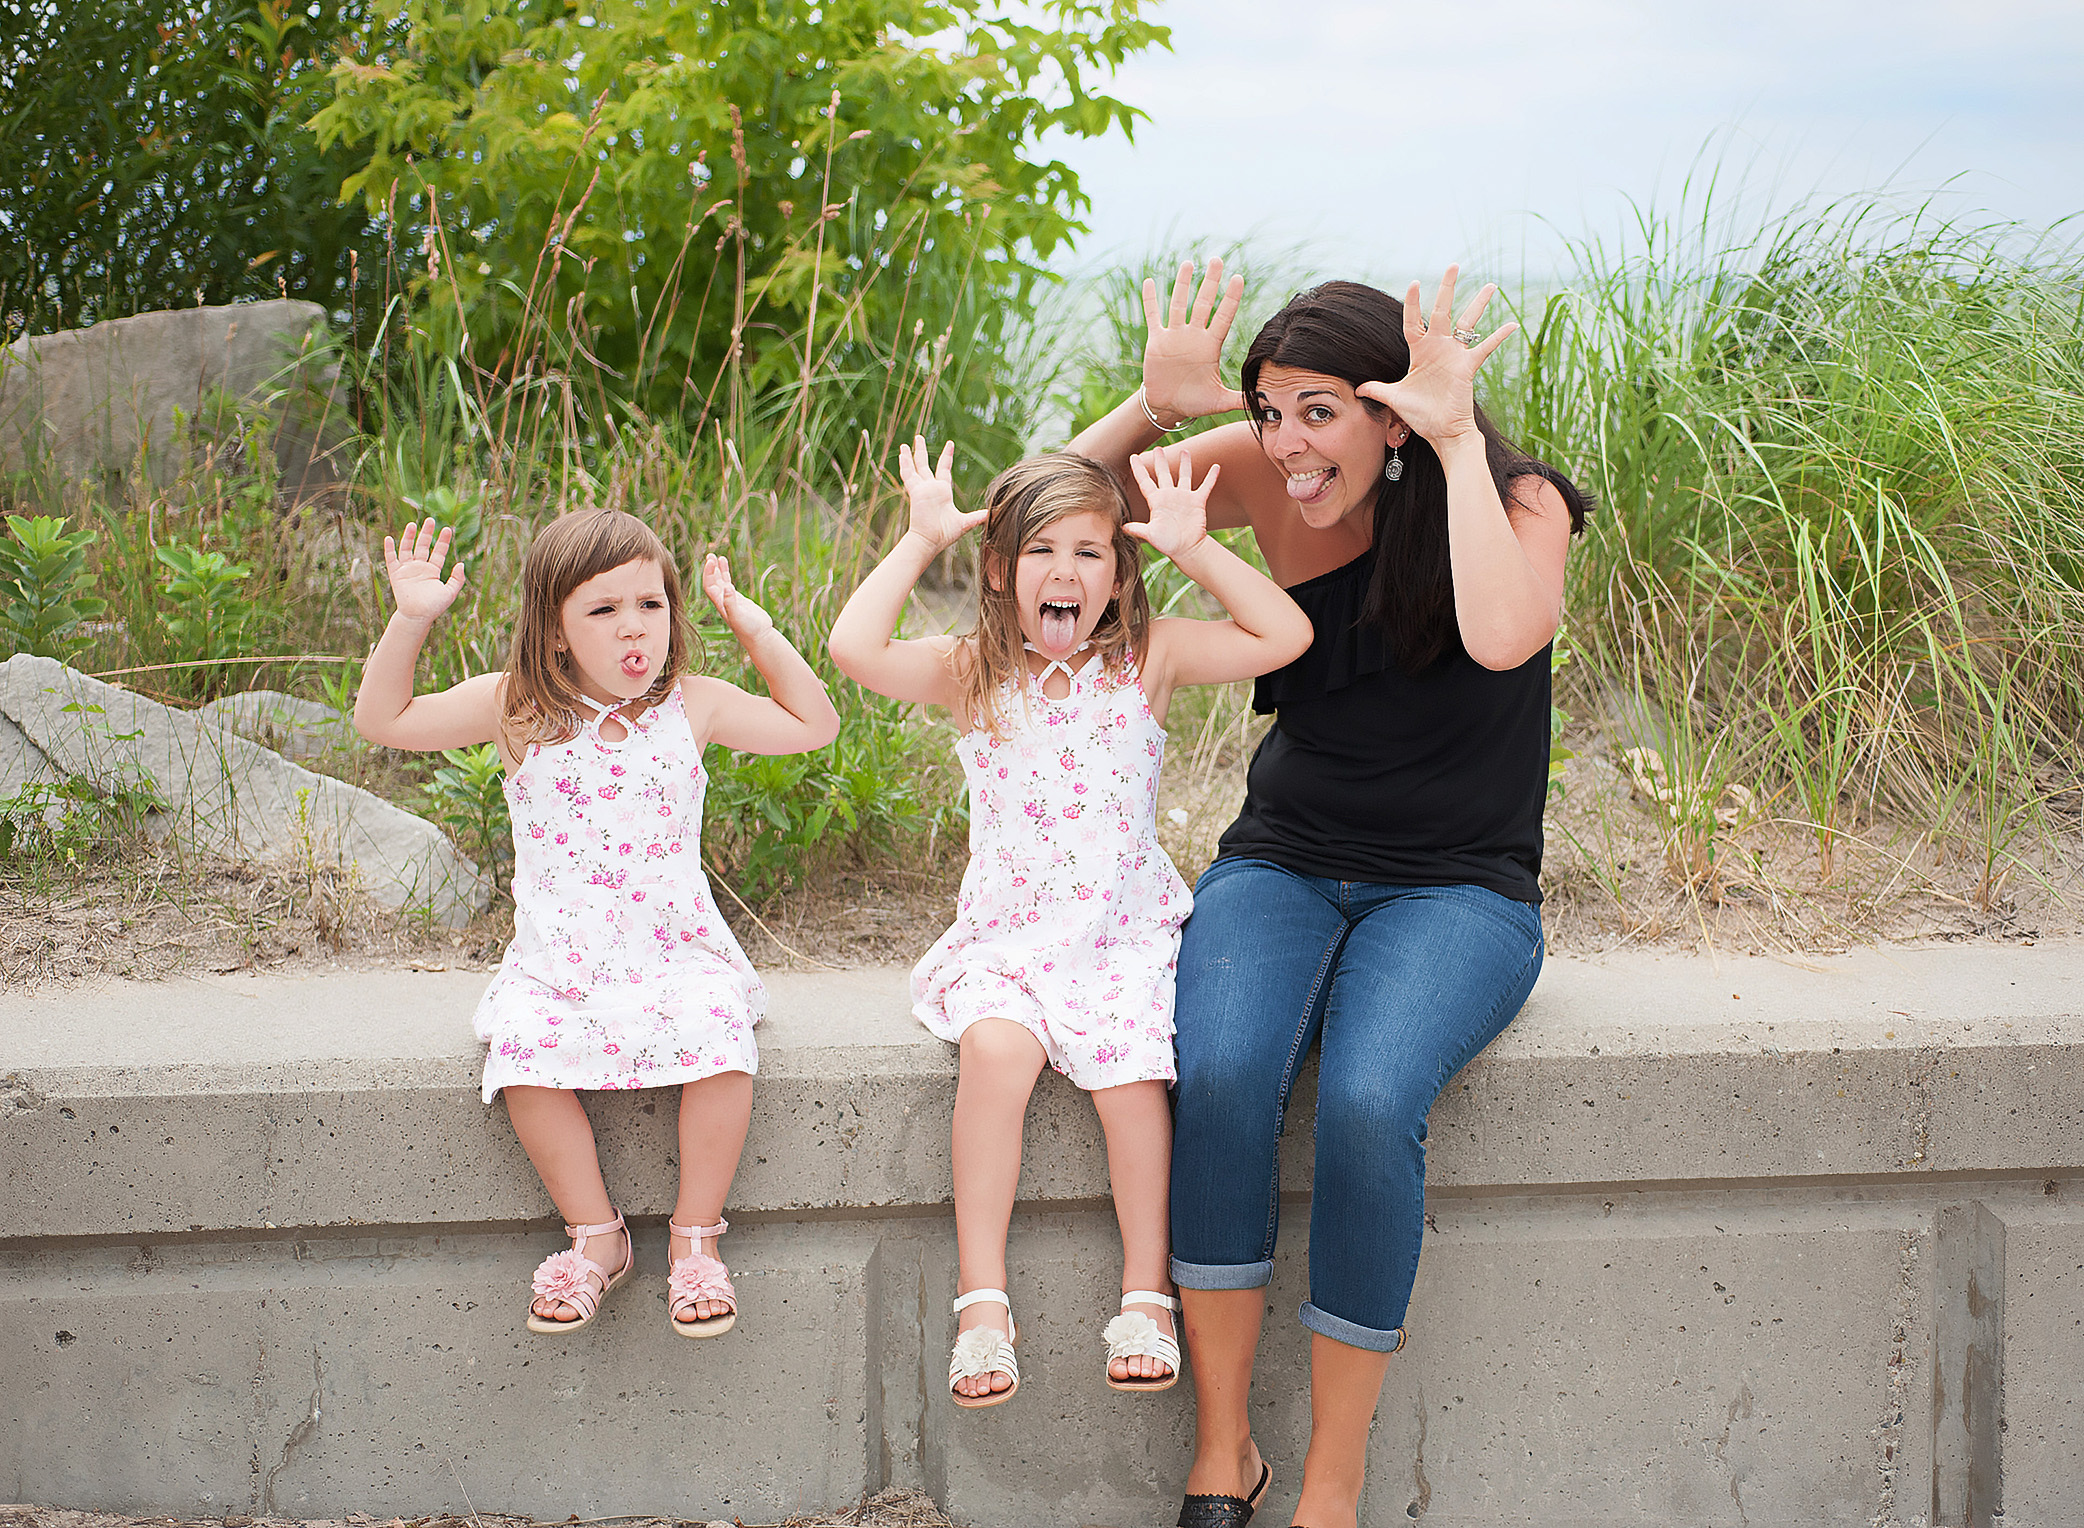 mom and daughters making silly faces at the beach